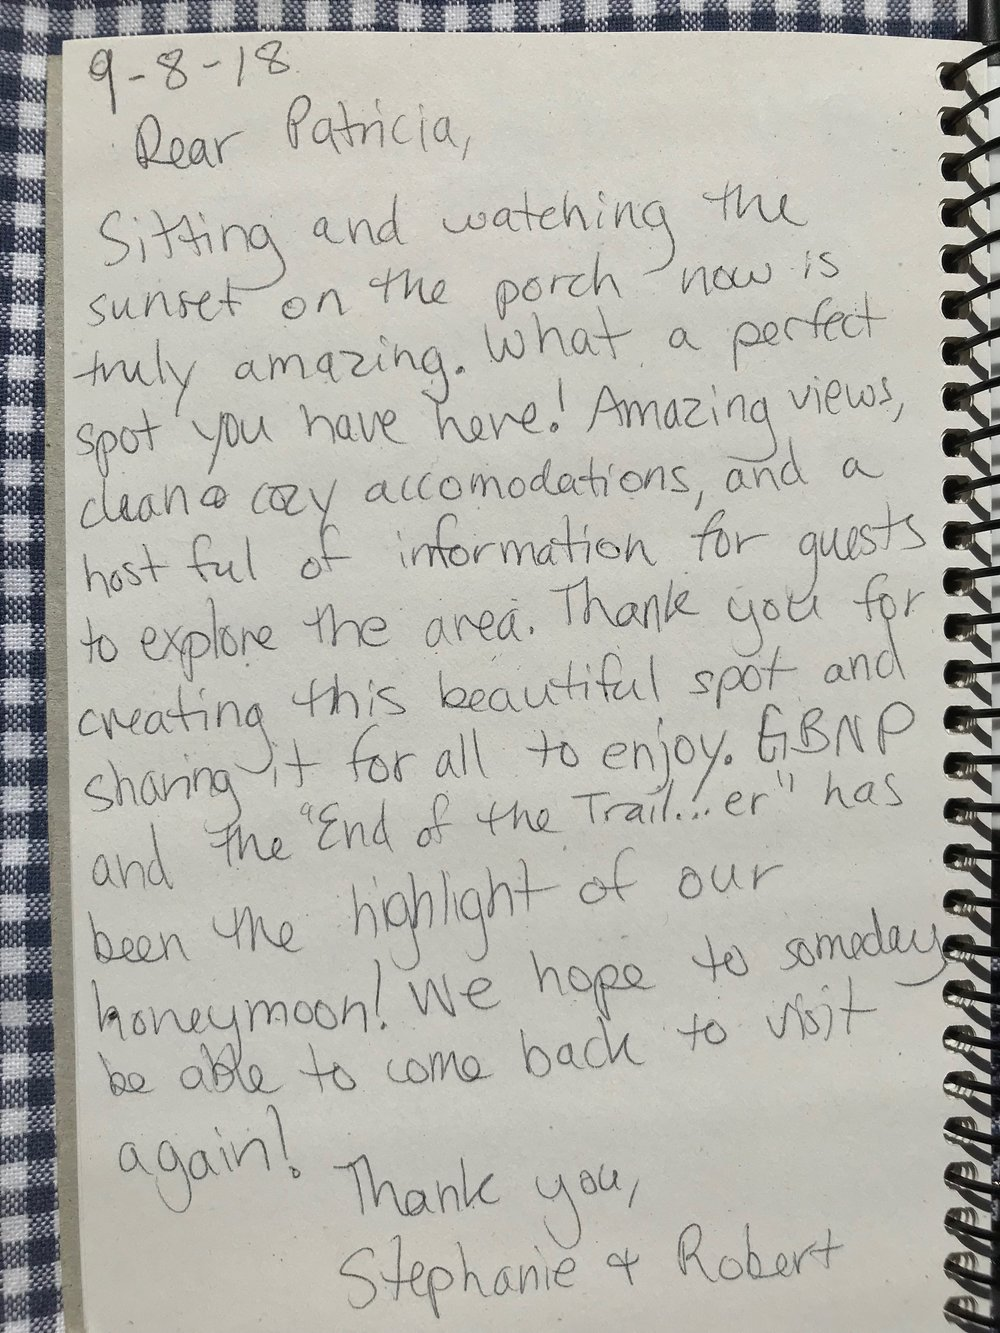 Page from the trail...er's guest book